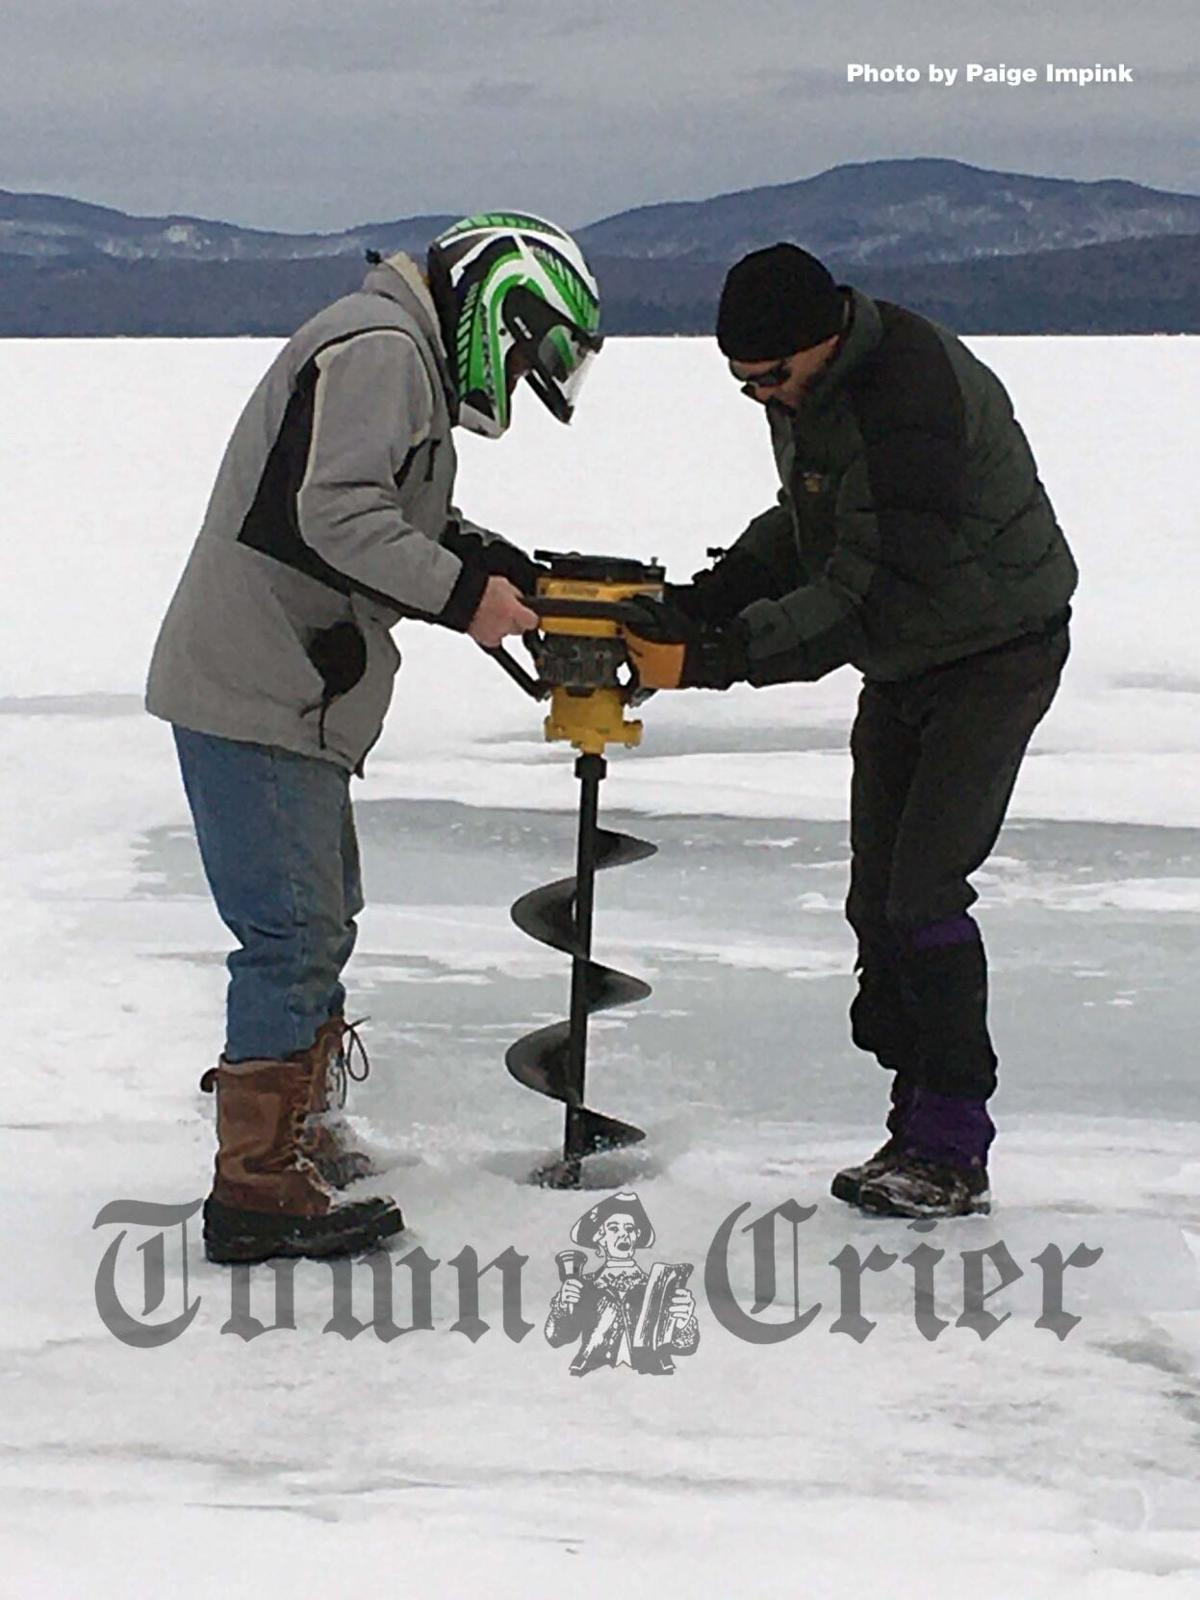 An ice auger is used to cut holes in the ice